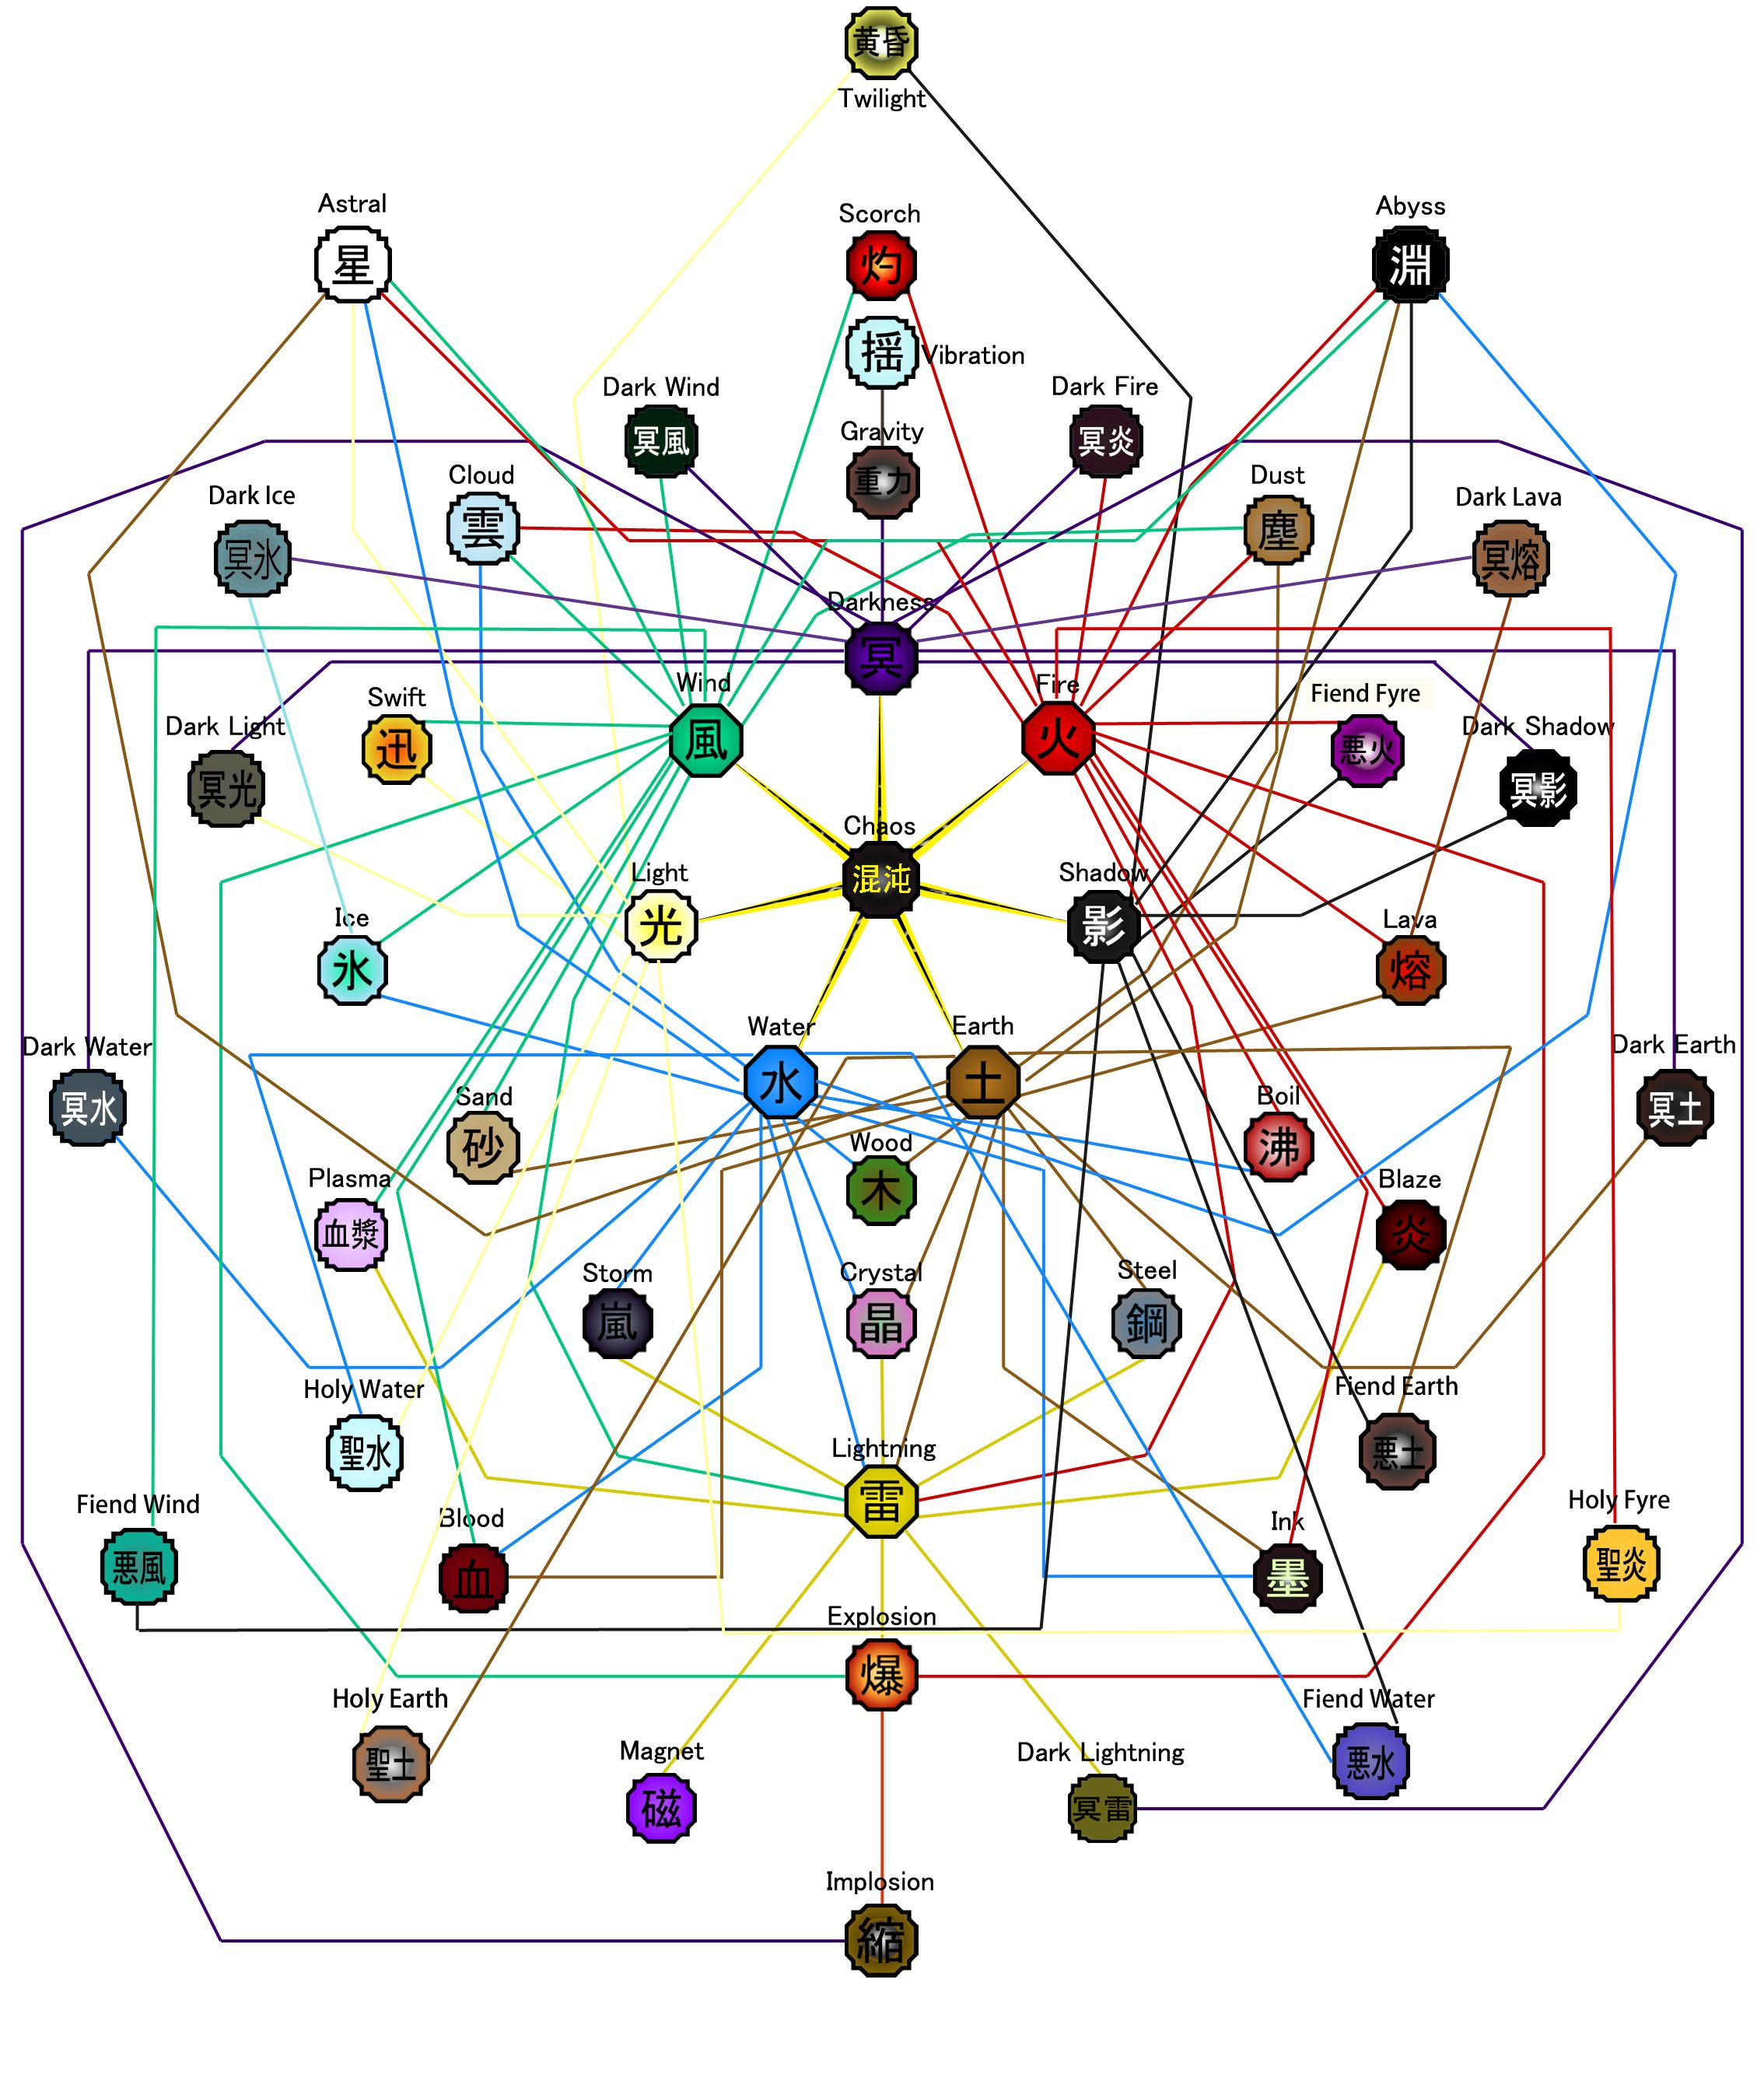 Naruto Elements Combination   Elemental Combinations 2 6 by